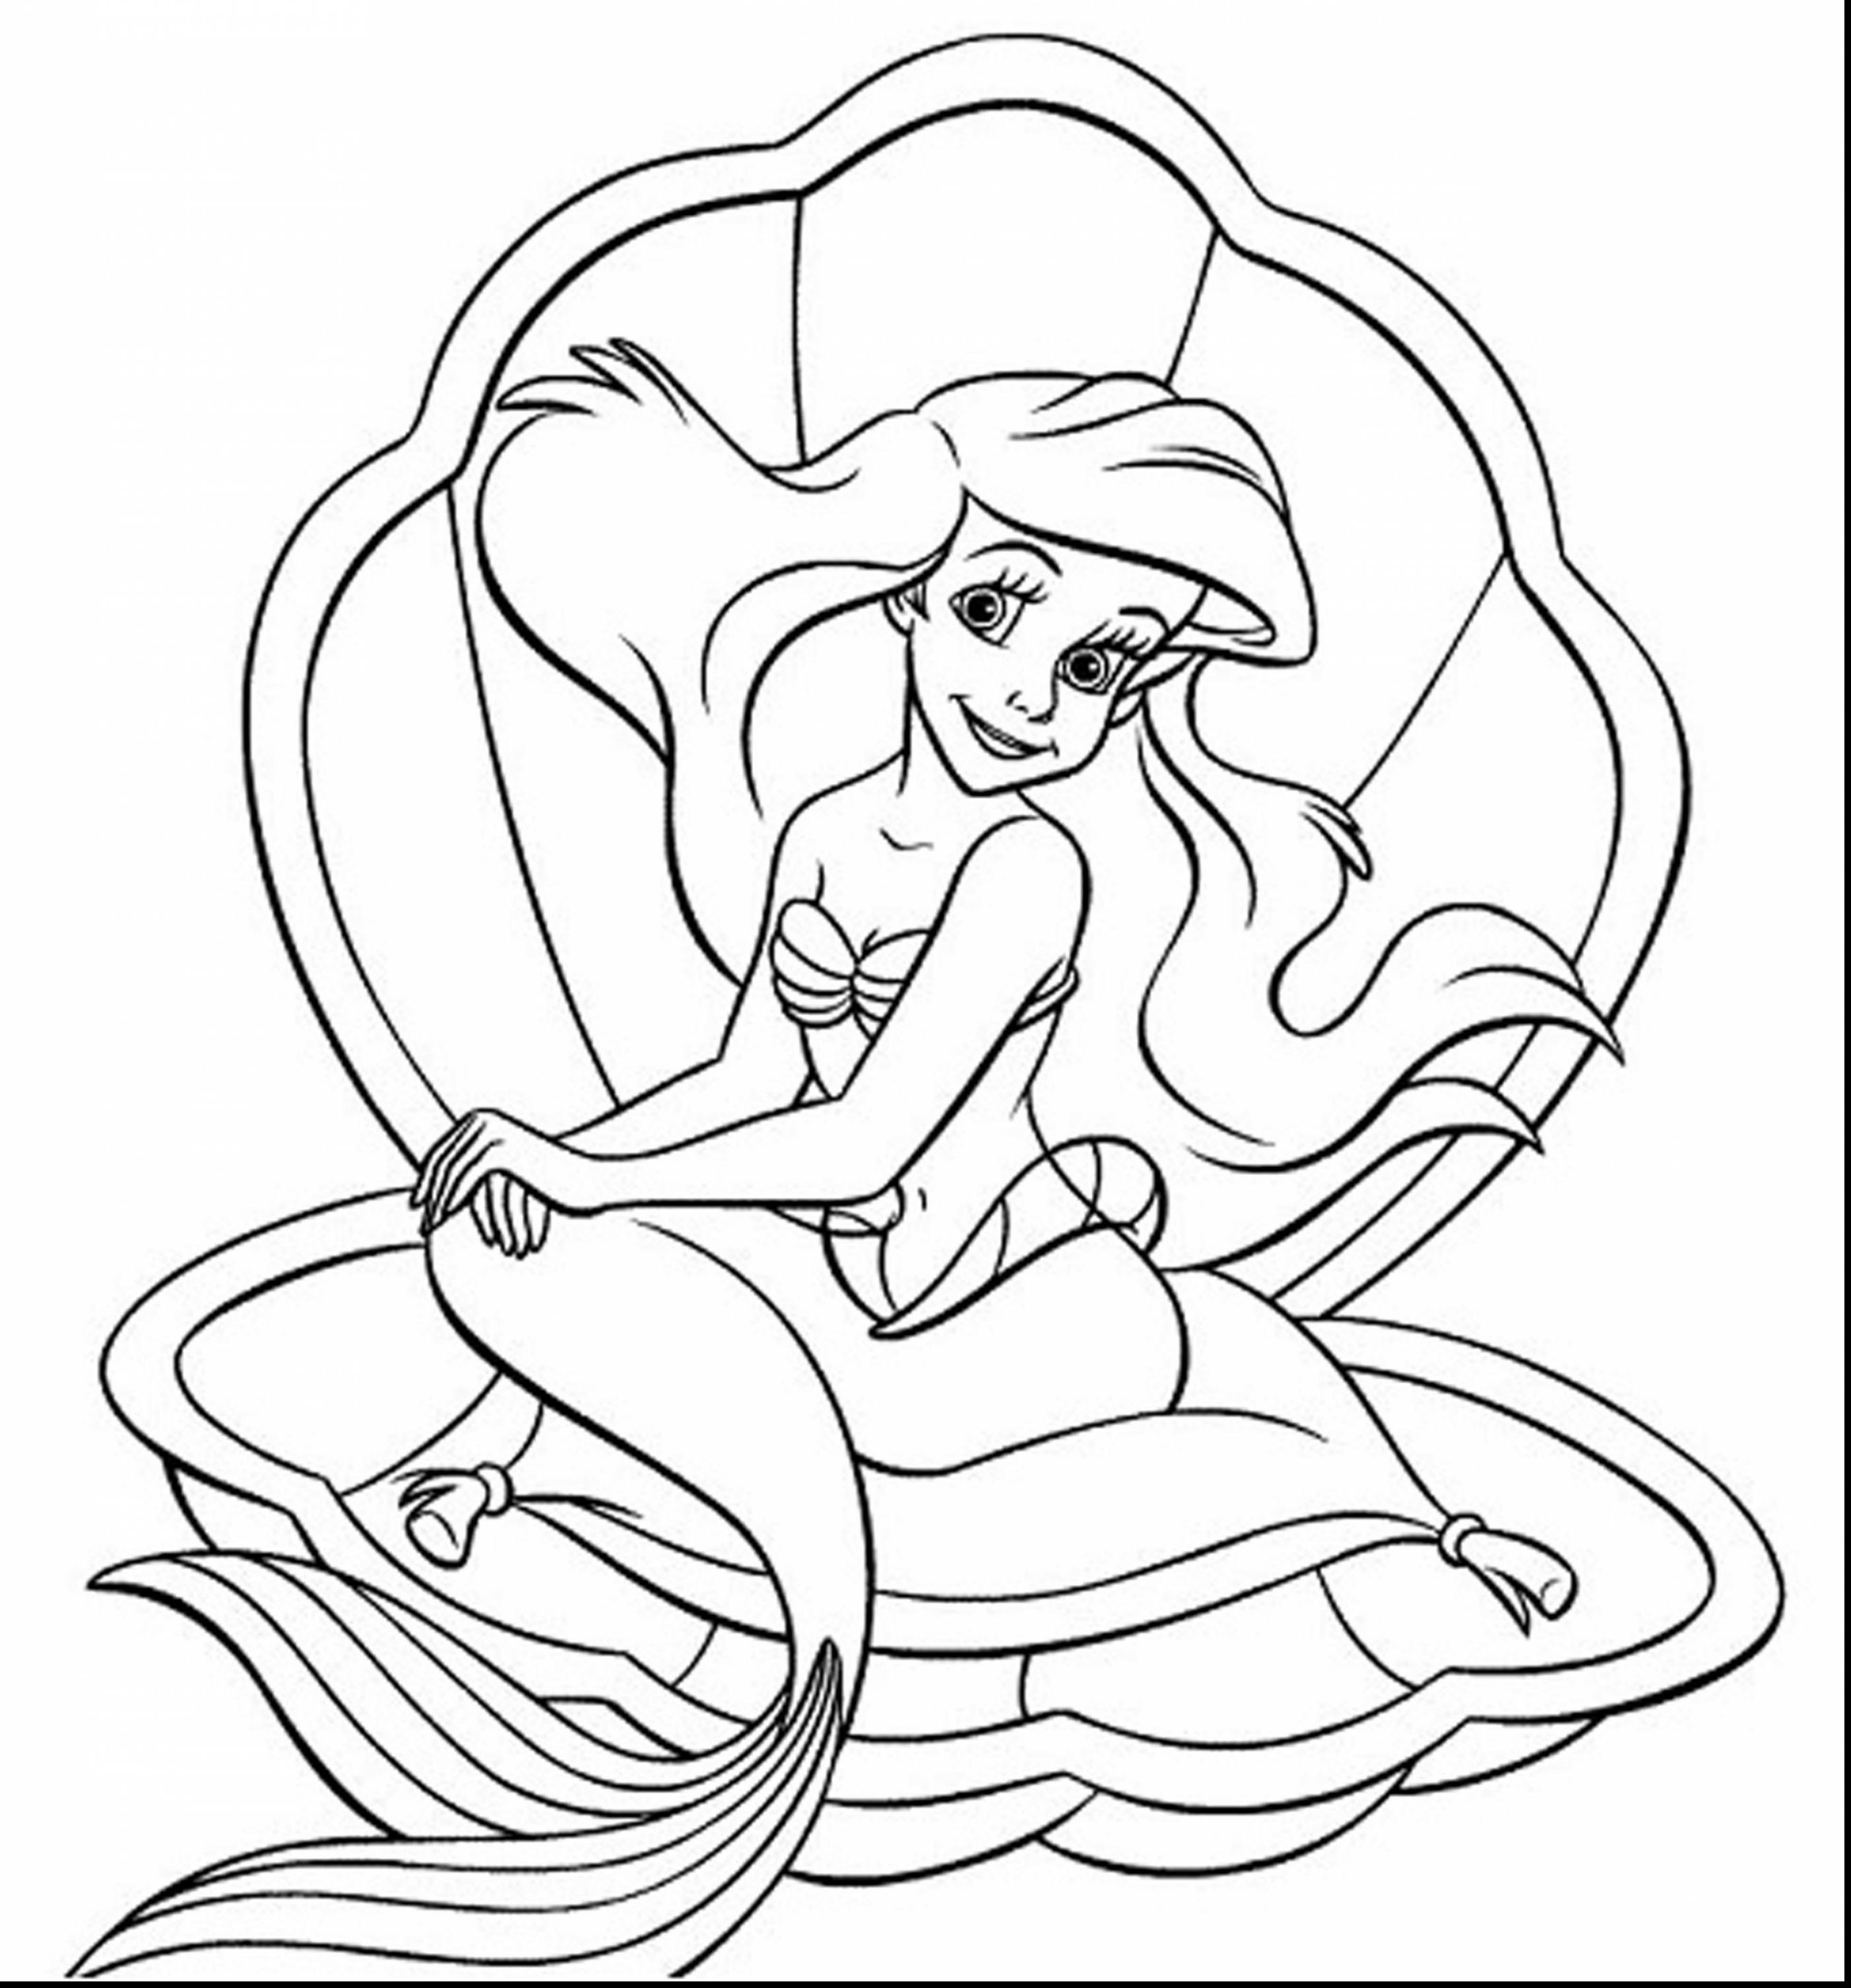 sofia pictures to color sofia the first coloring pages the sun flower pages pictures to sofia color